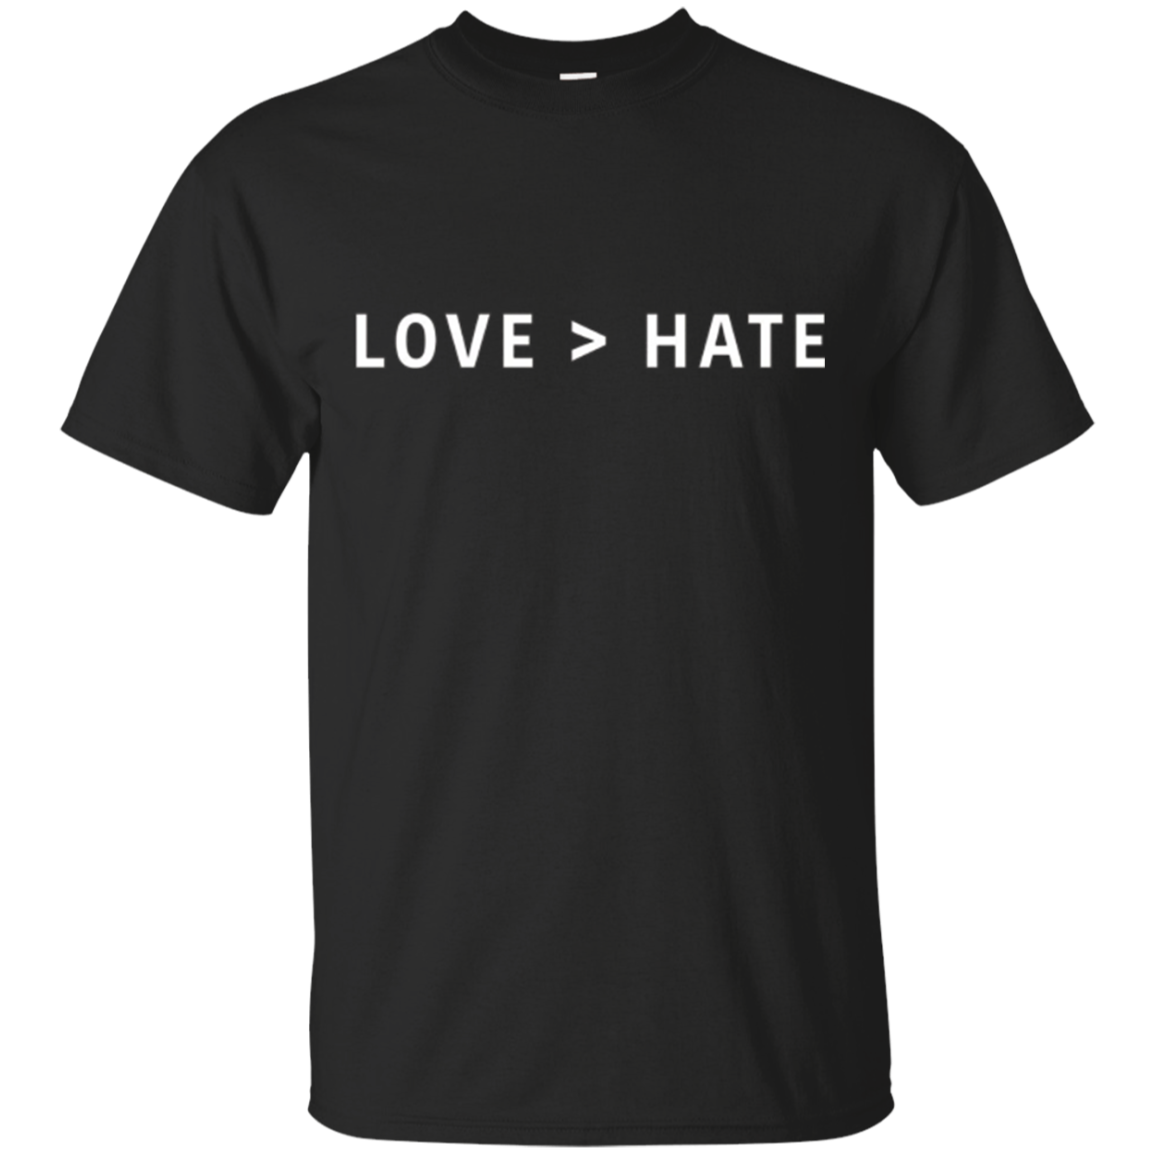 Love > Hate - Love is Greater Than Hate T-Shirt